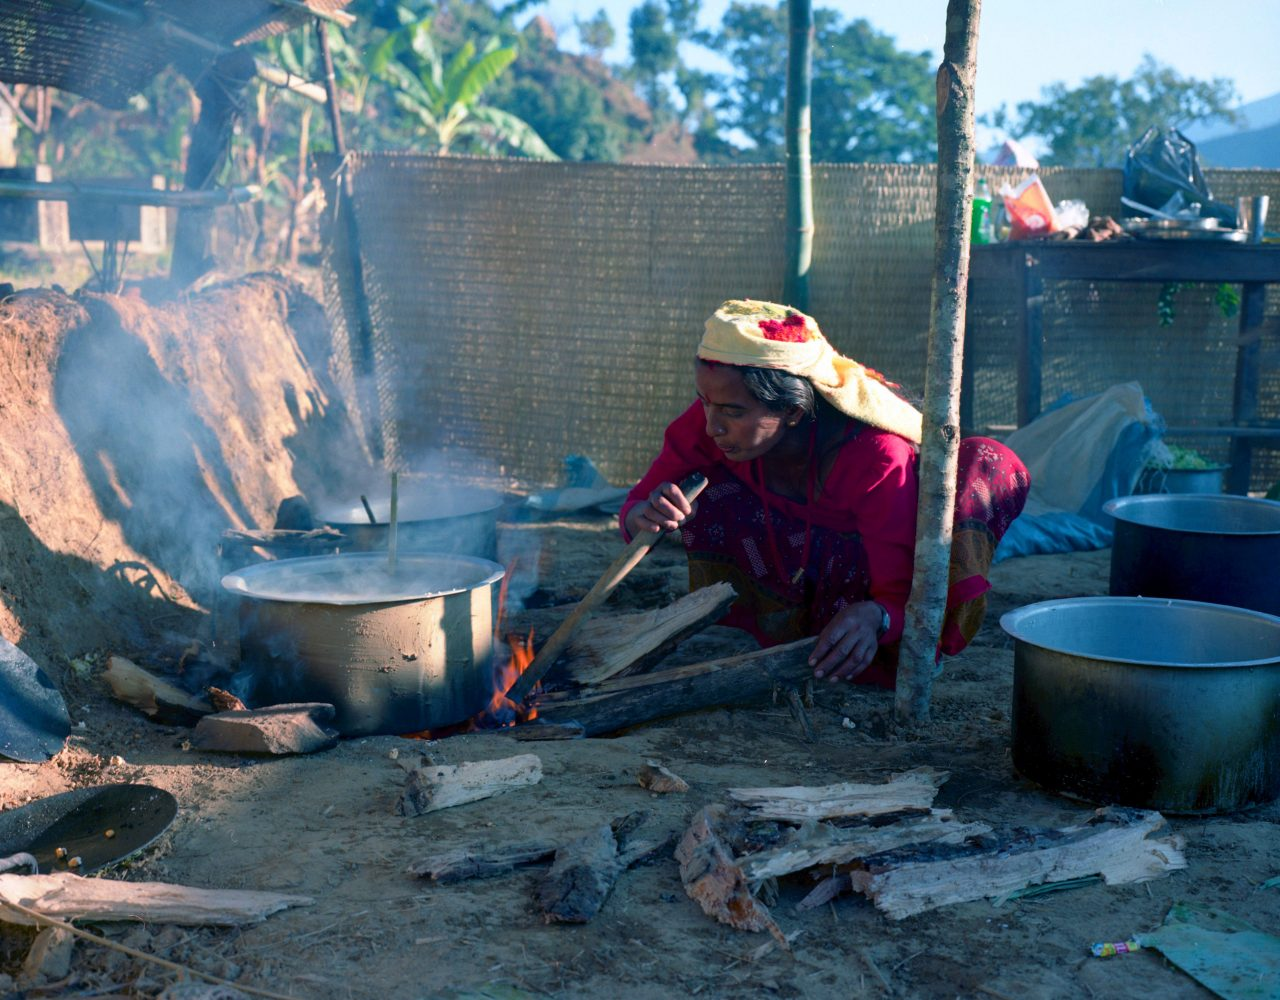 Nepal woman and fire